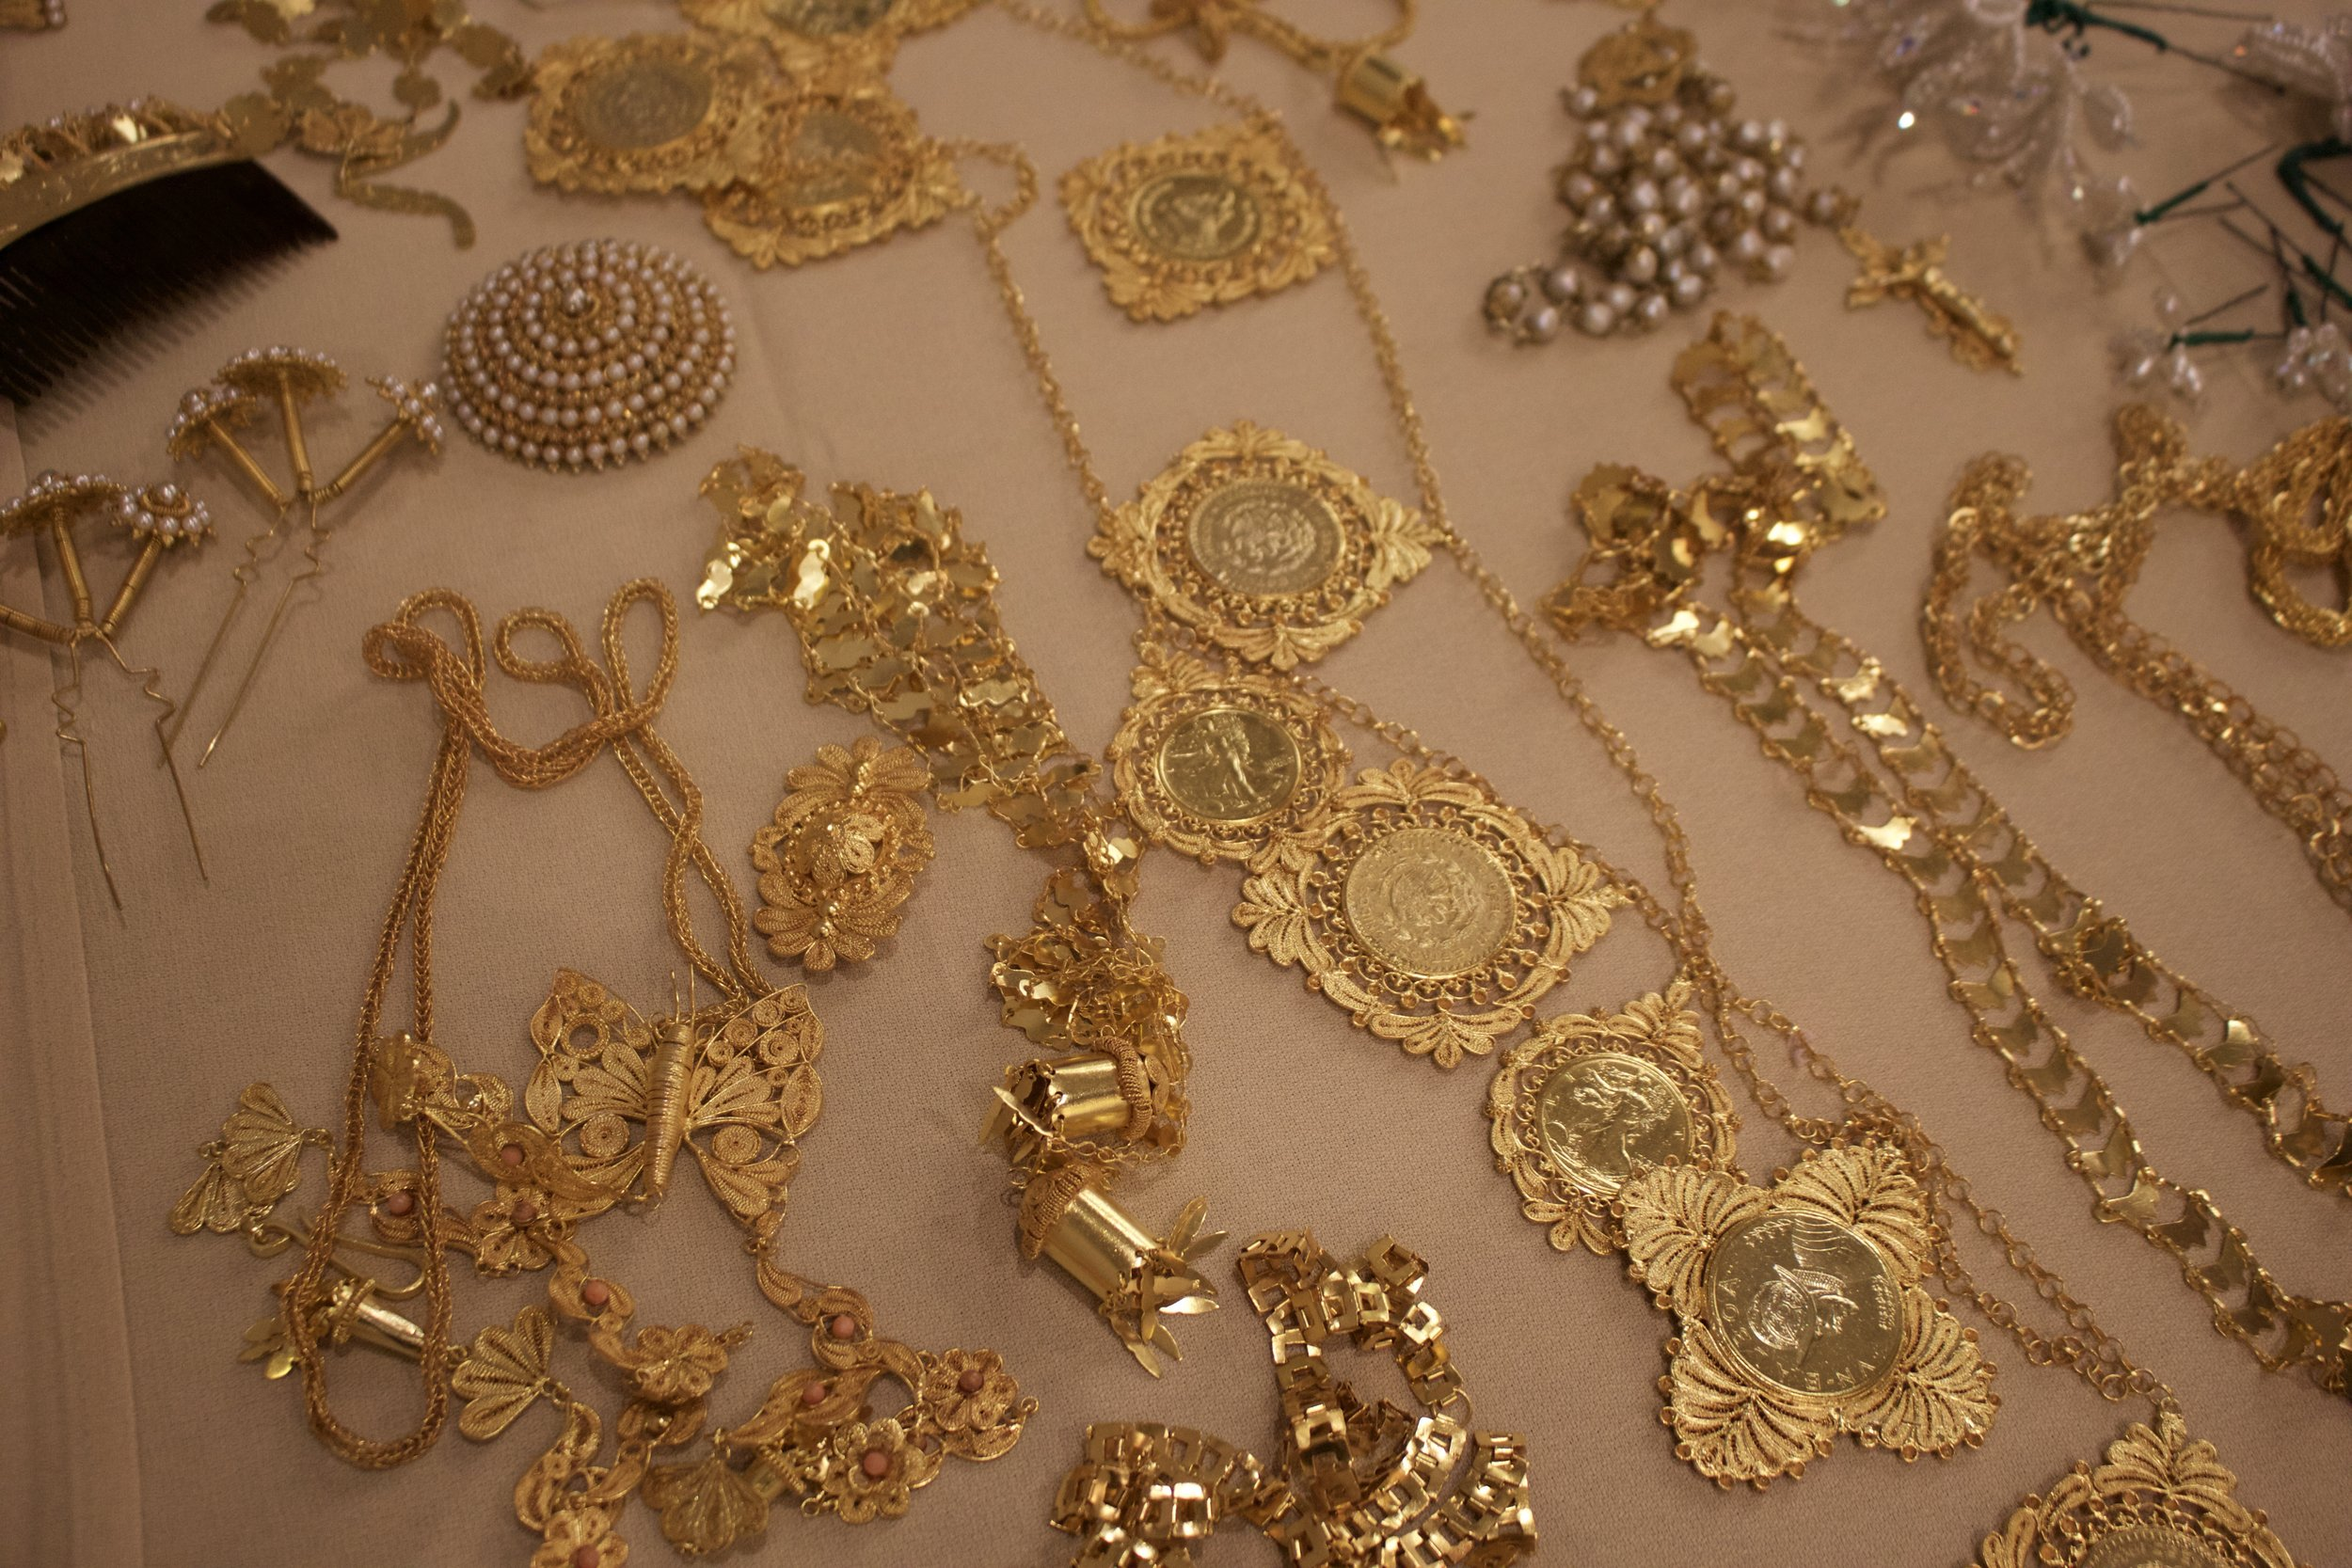 The golden jewelry worn with the pollera.